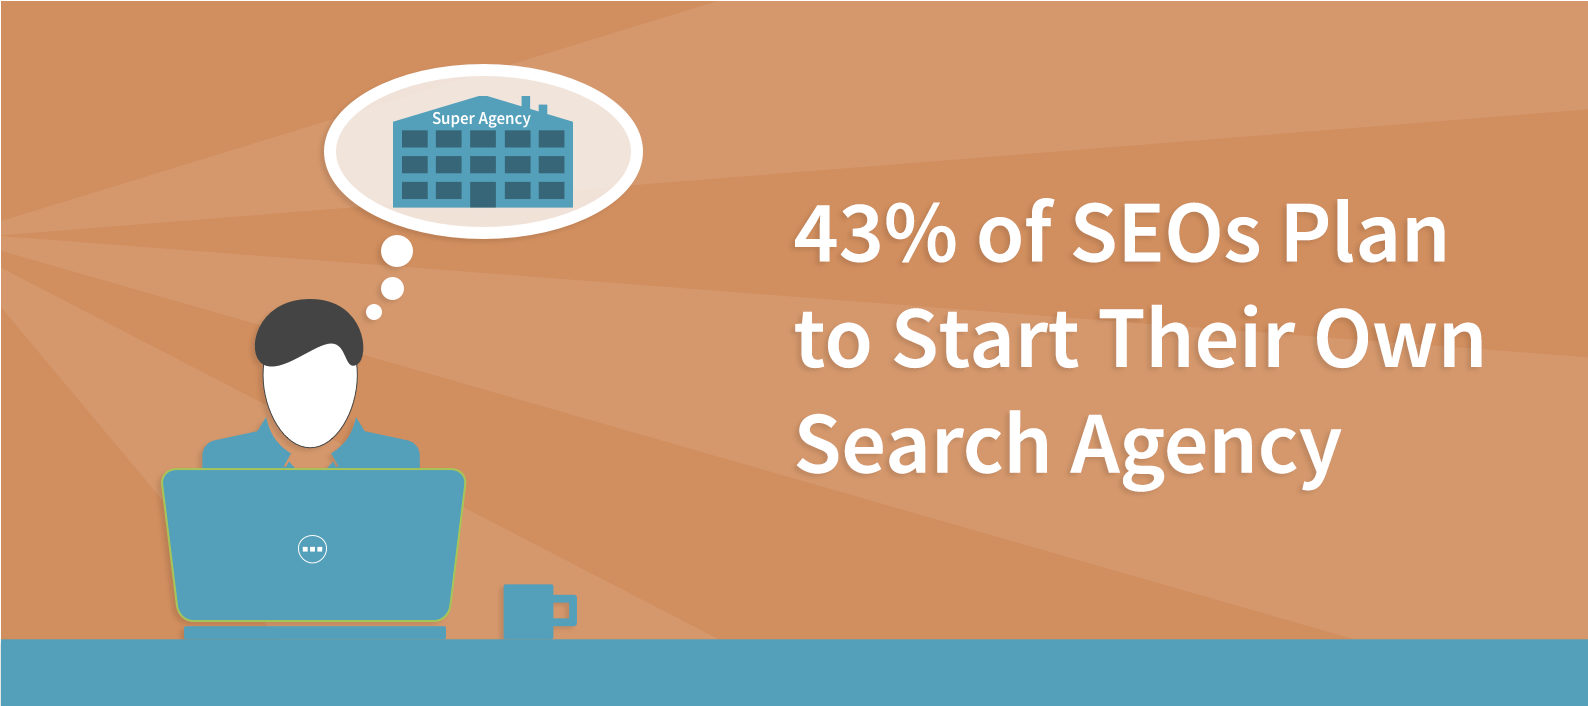 43% of SEOs Plan to Start Their Own Search Agency